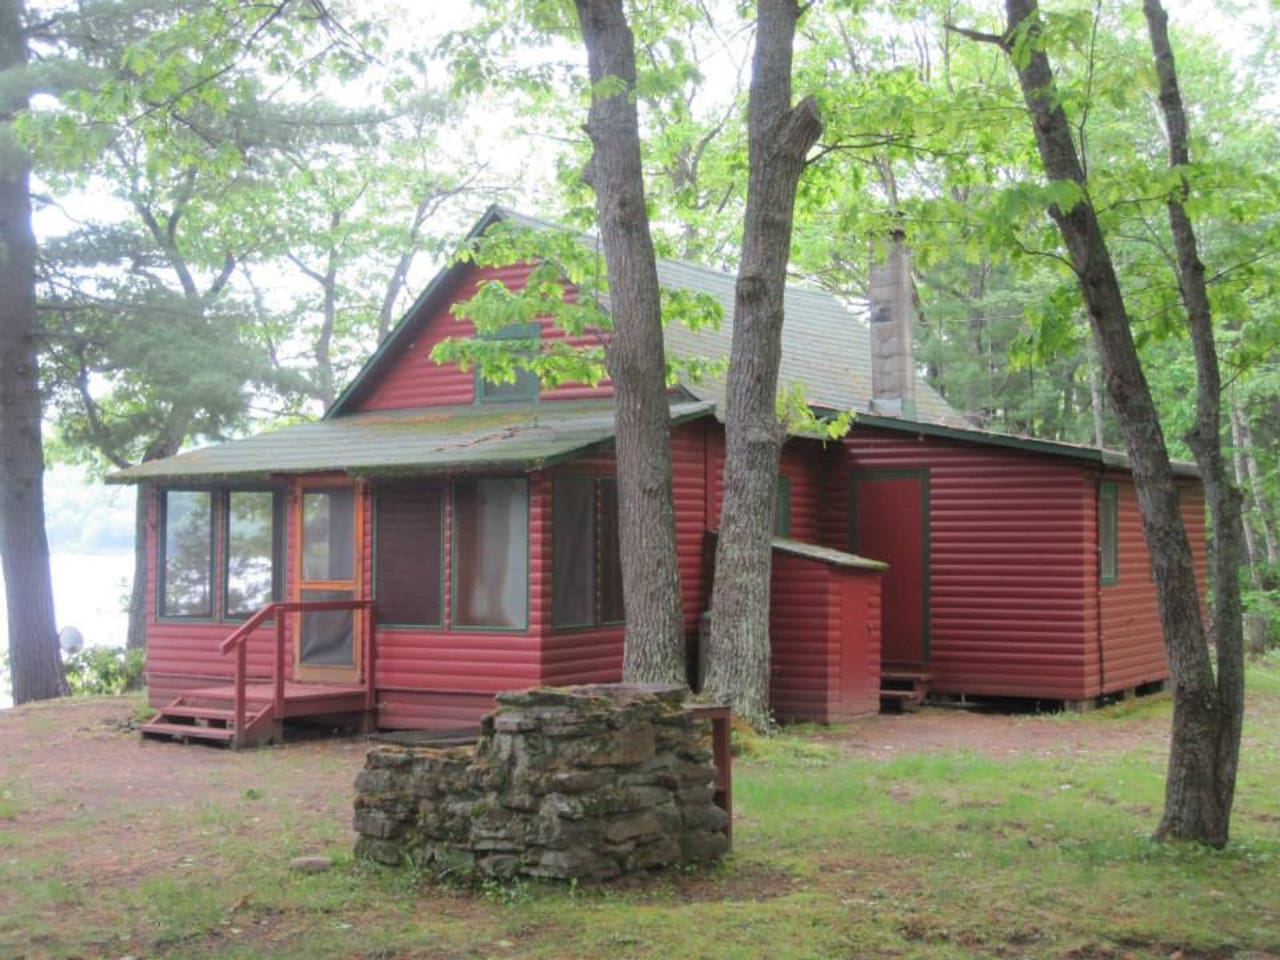 Our little cottage by the lake was originally the cookhouse/bunkhouse for a lumber company.